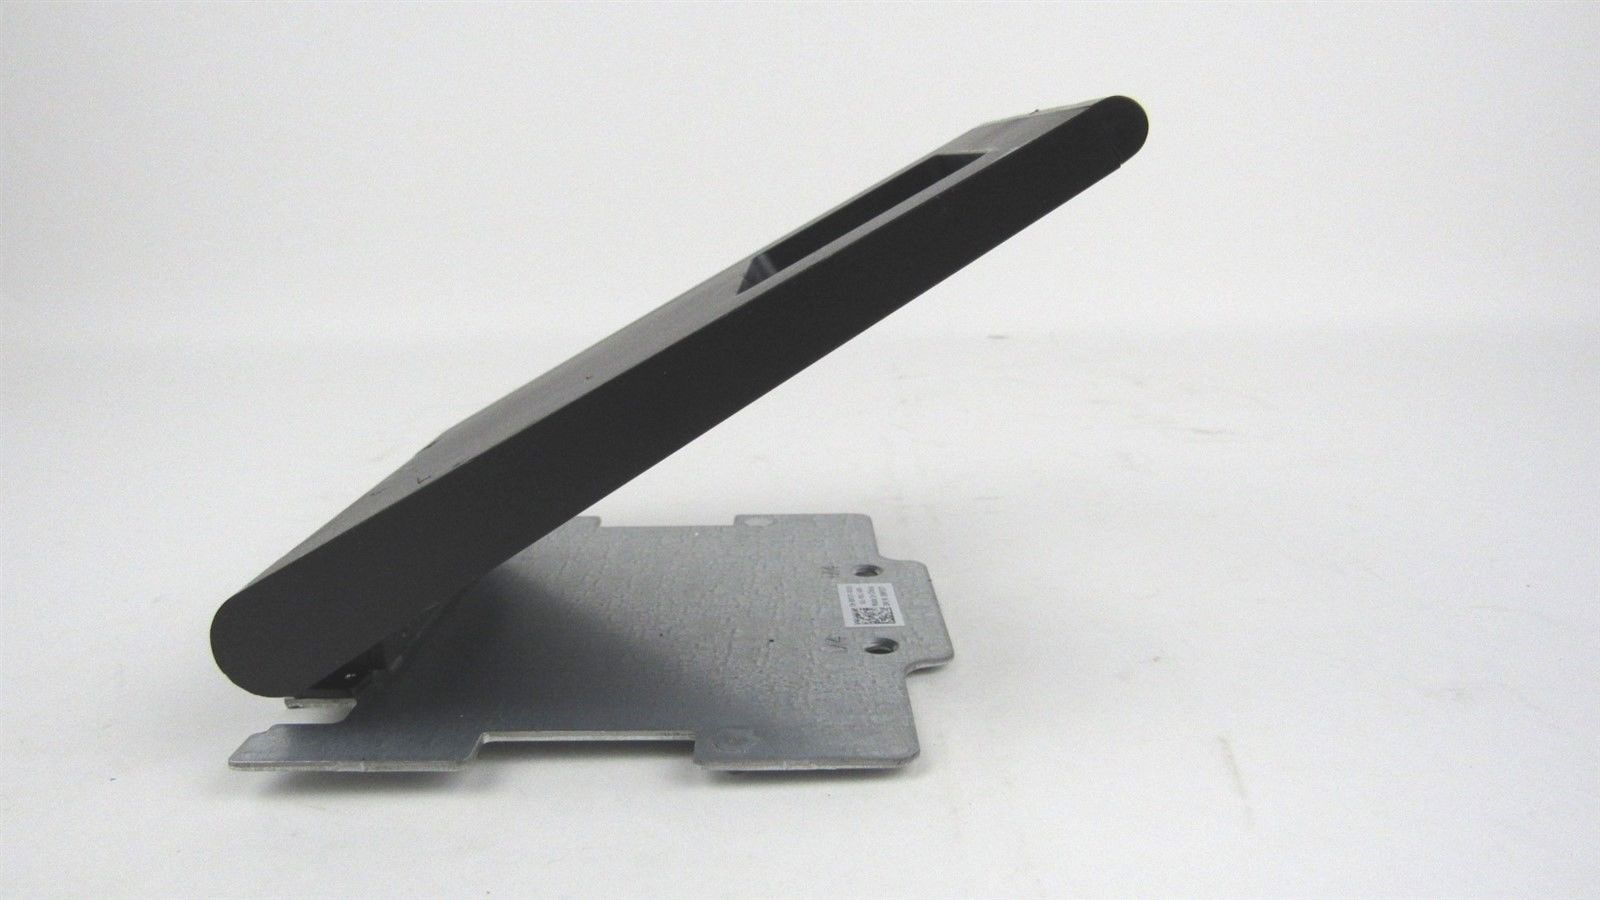 PC Parts Unlimited 9P3JT DELL INSPIRON 24 3455 All in ONE Black Bracket Base Stand 9P3JT